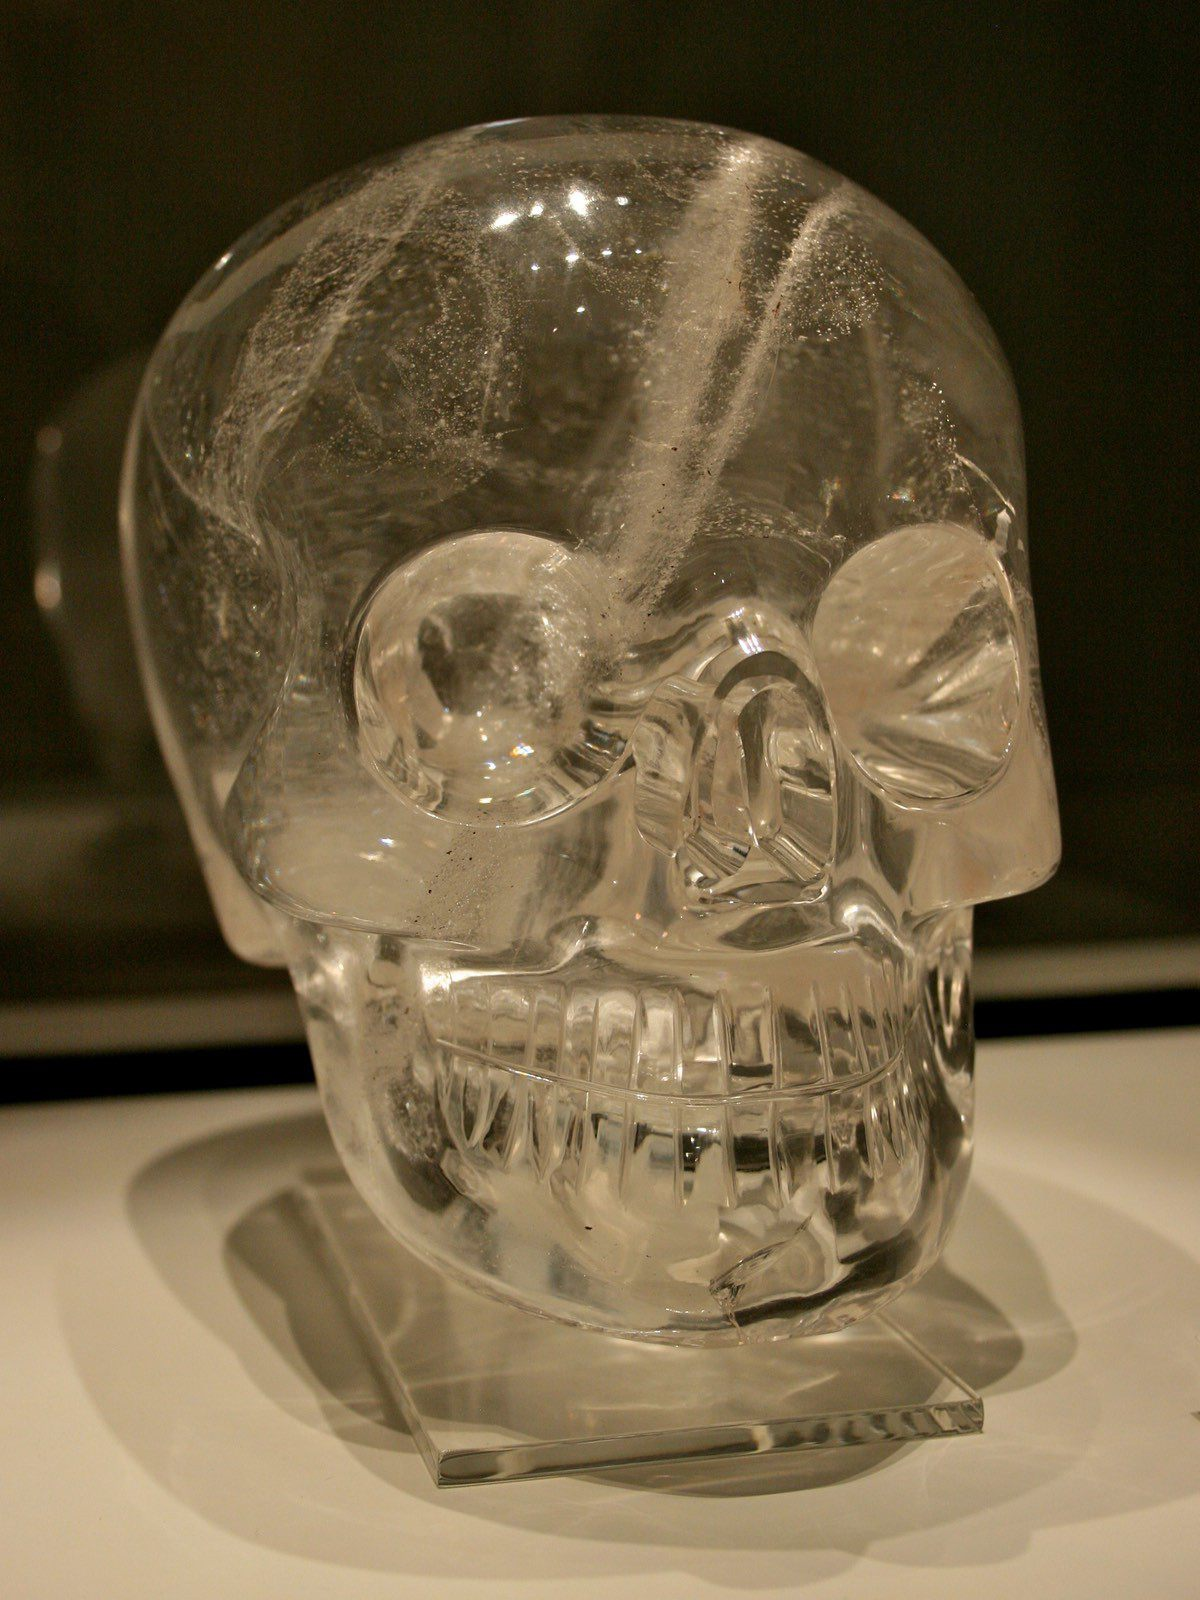 Mystery of the Crystal Skulls The Stare of Death